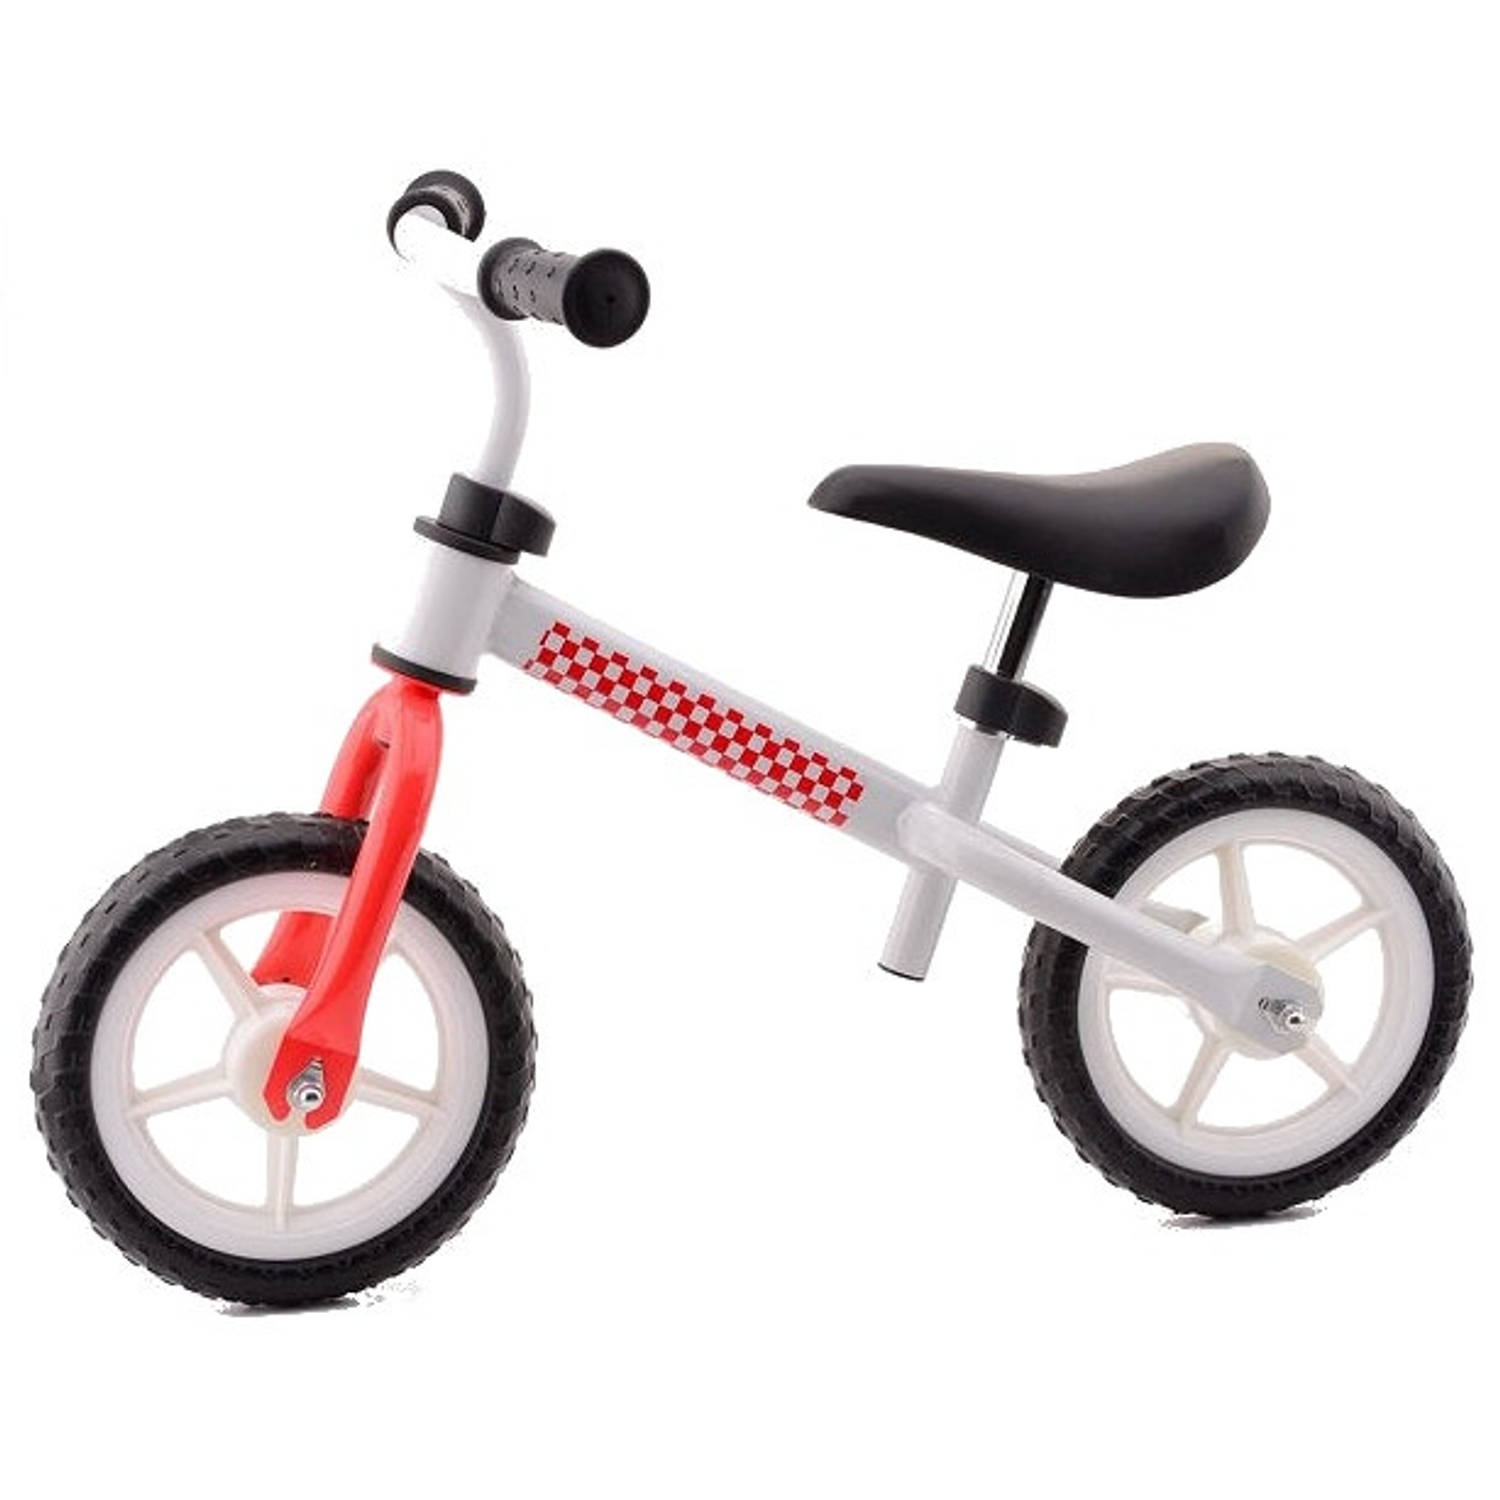 Johntoy My first bike 12 Inch Junior Wit/Rood